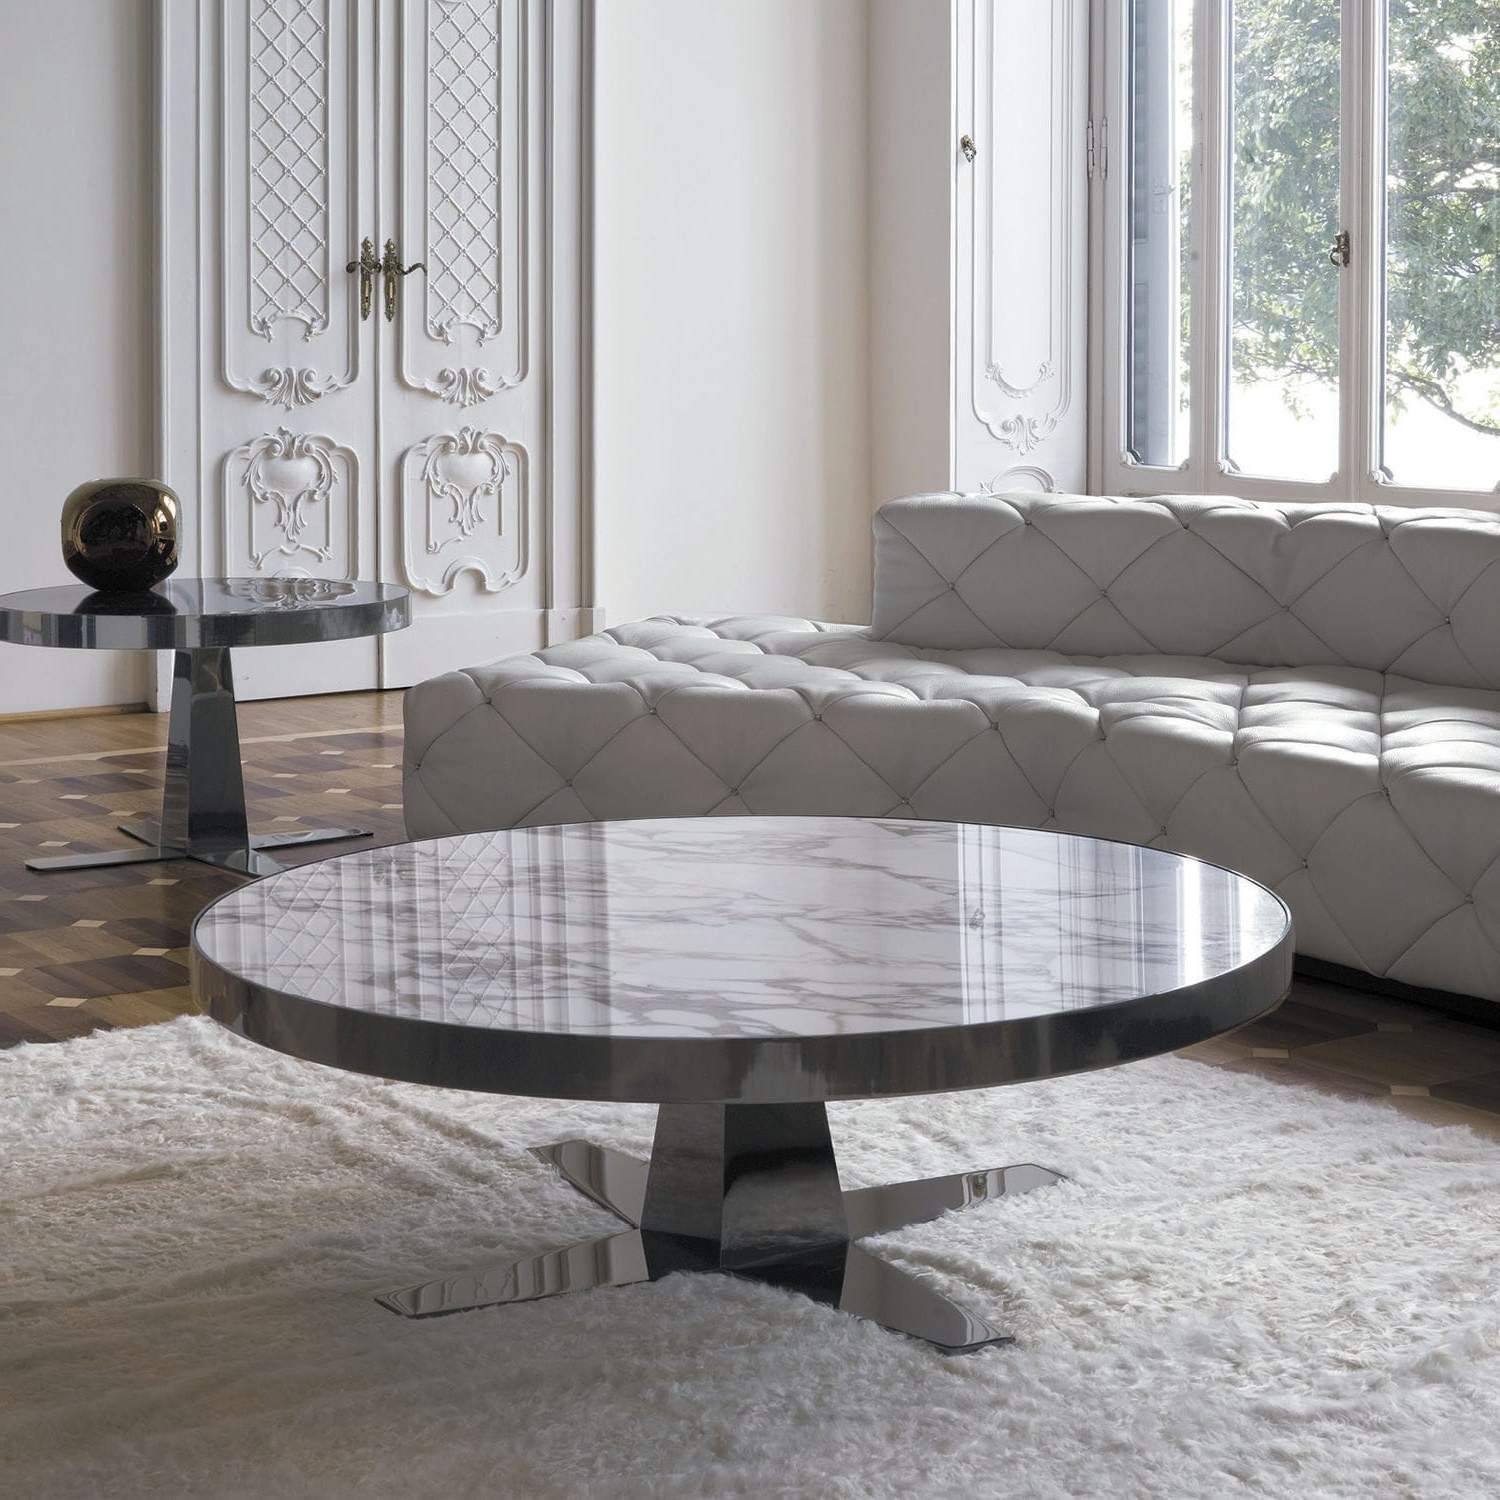 Smart Round Marble Top Coffee Tables Inside Most Up To Date Coffee Table: Smart Round Marble Coffee Table At Your Room Ideas (View 19 of 20)